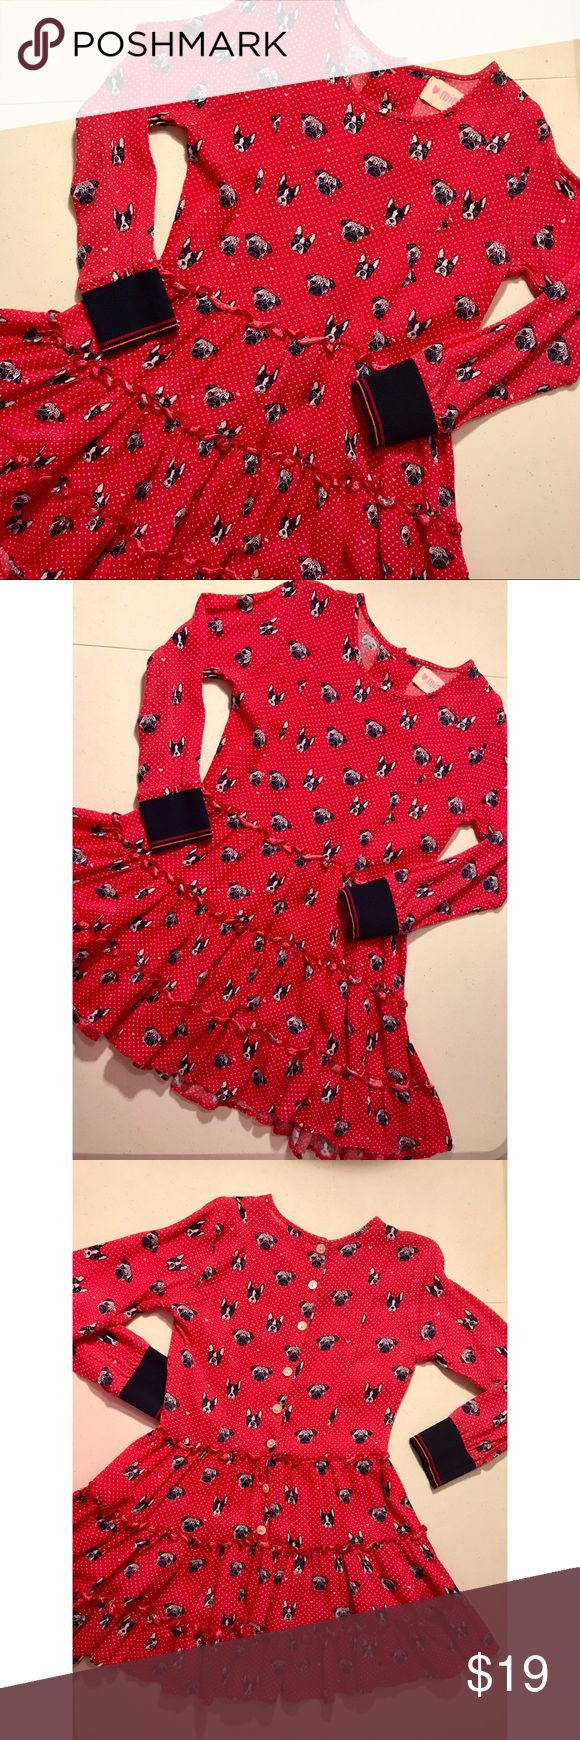 Dog Printed Polka Dot Long Sleeve Dress Mim Pi Girls Size 116/6 Y Dog Printed Polka Dot Long Sleeve Dress & Tights. No holes or stains. Smoke free home. GREAT condition Mim-pi Dresses Casual